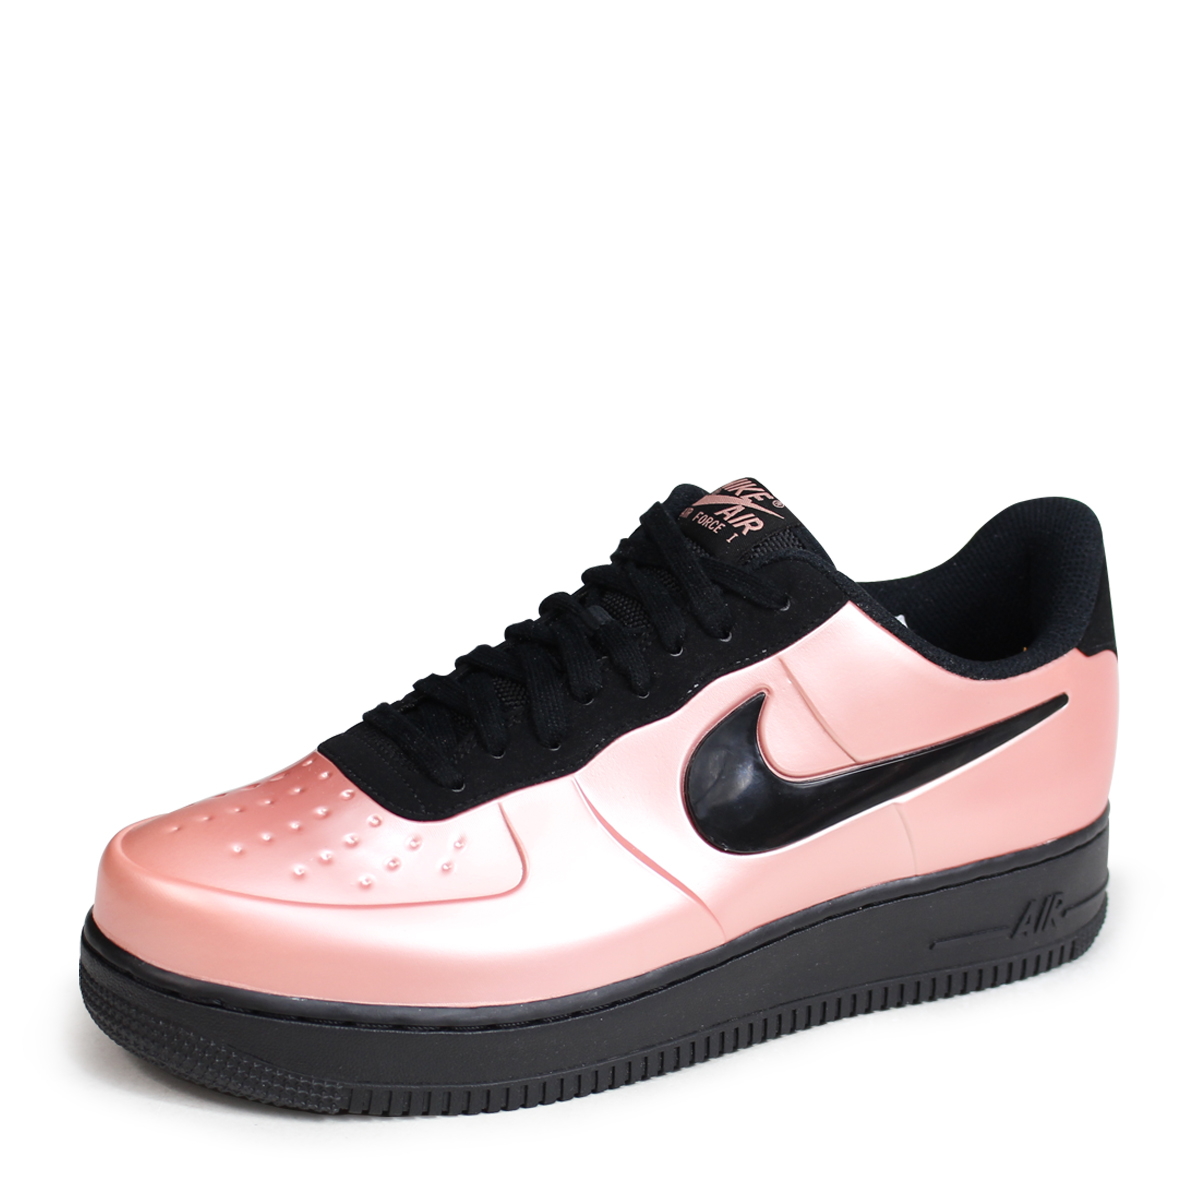 90015431d33 NIKE AIR FORCE 1 FOAMPOSITE PRO CUPSOLE Nike air force 1 フォームポジットスニーカーメンズ  AJ3664-600 pink  load planned Shinnyu load in reservation product ...